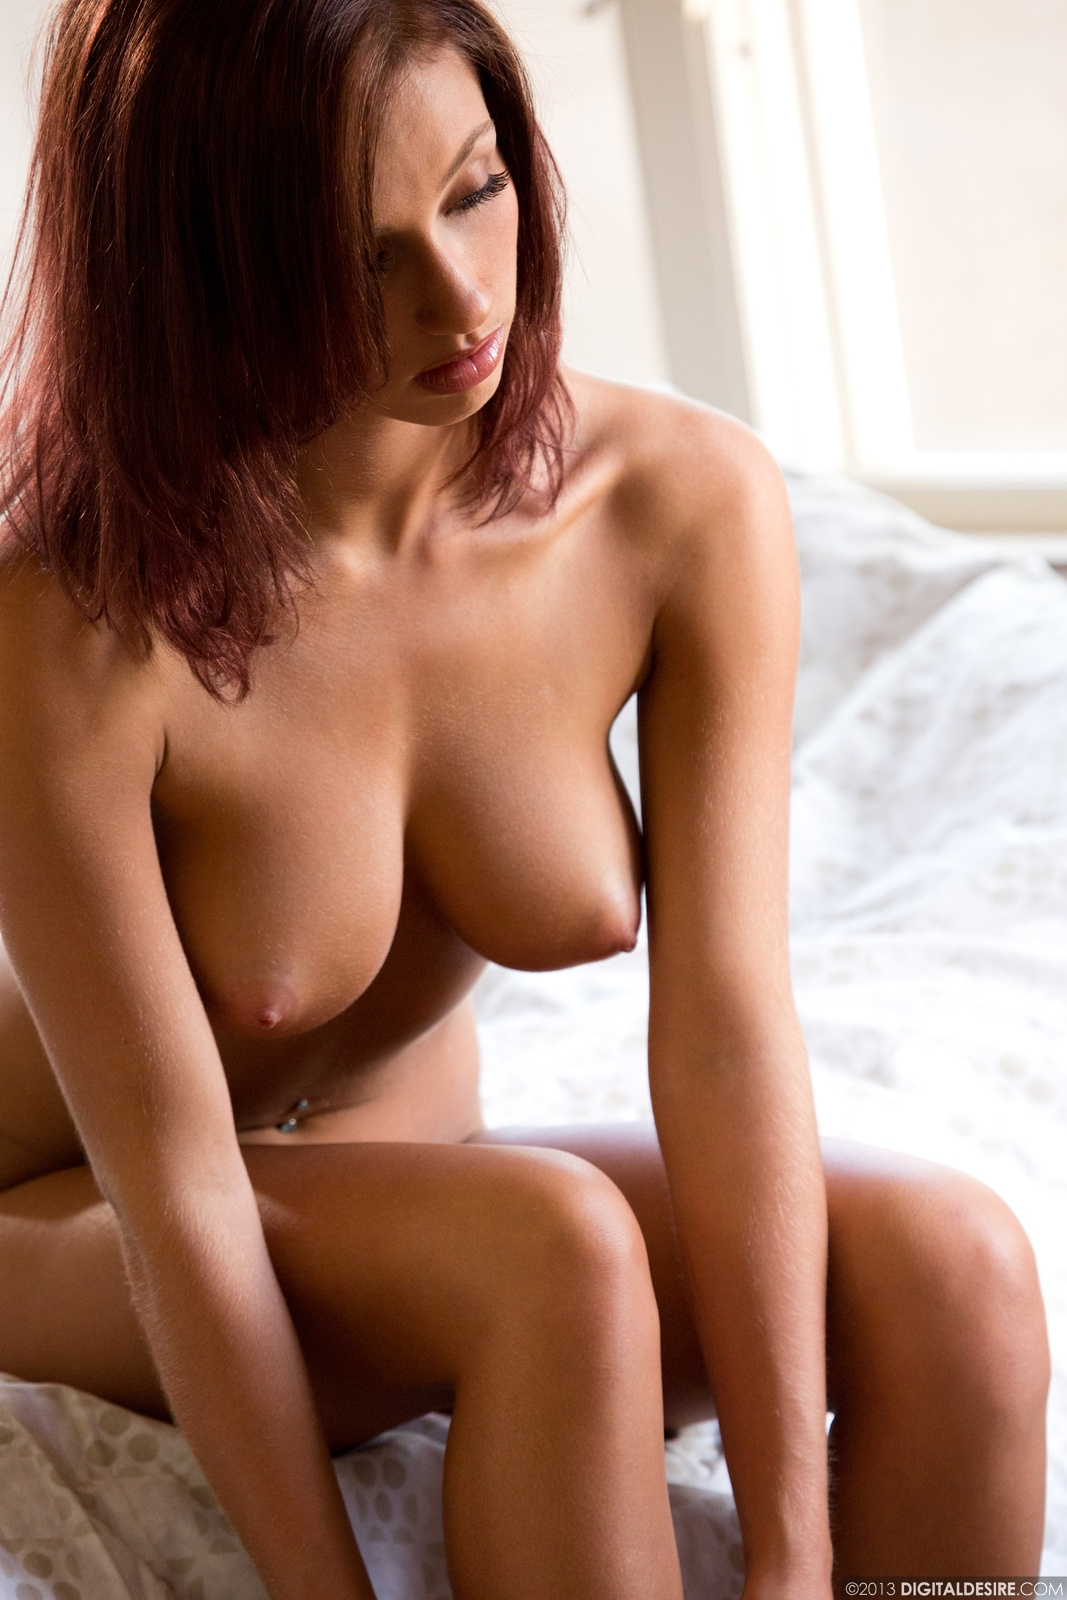 Share victoria lynn nude consider, that